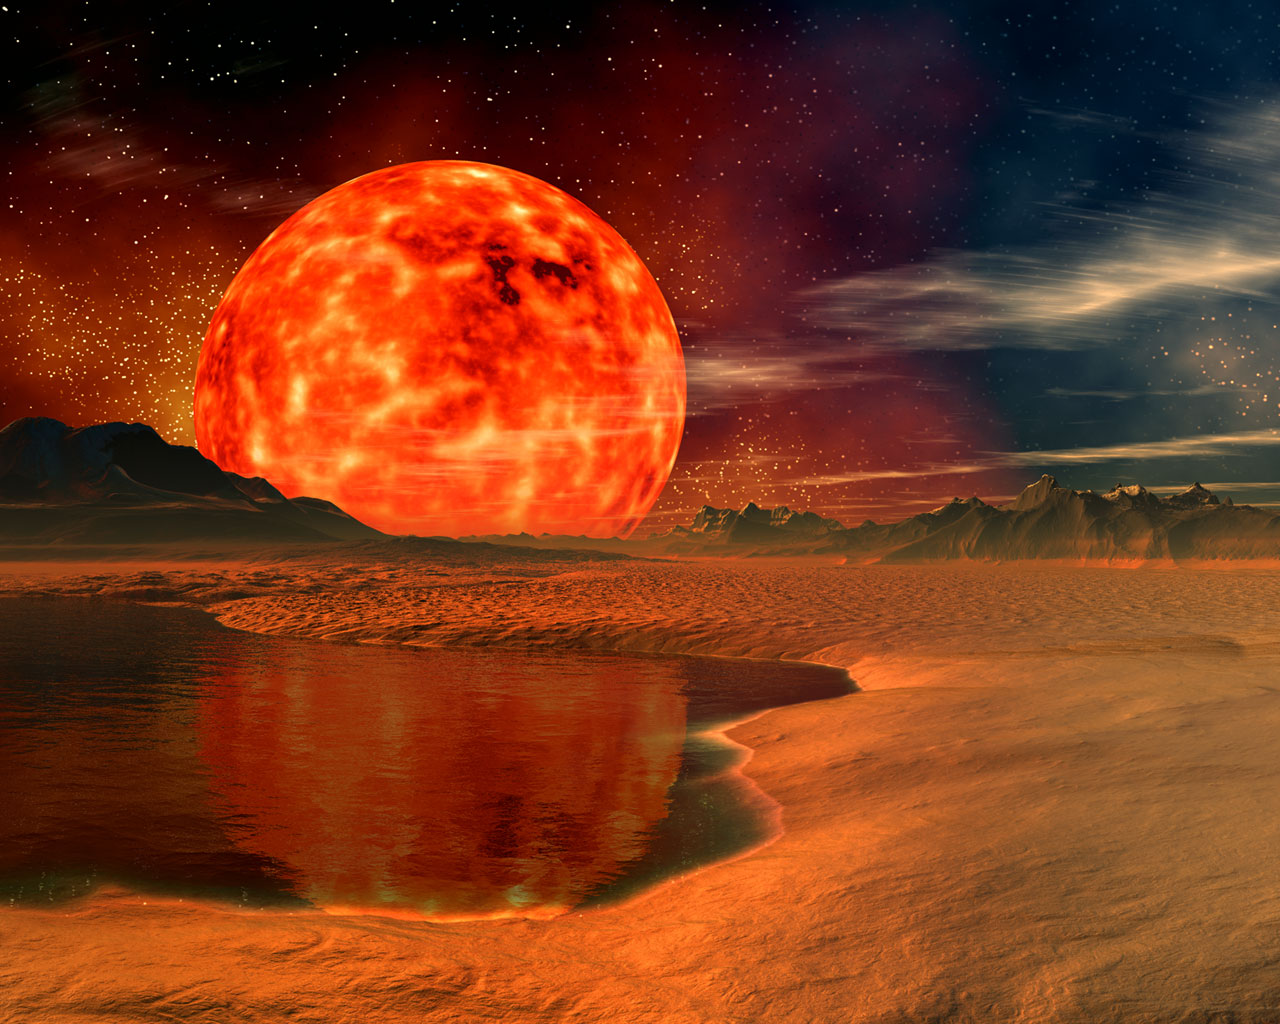 A red giant over a desert world.